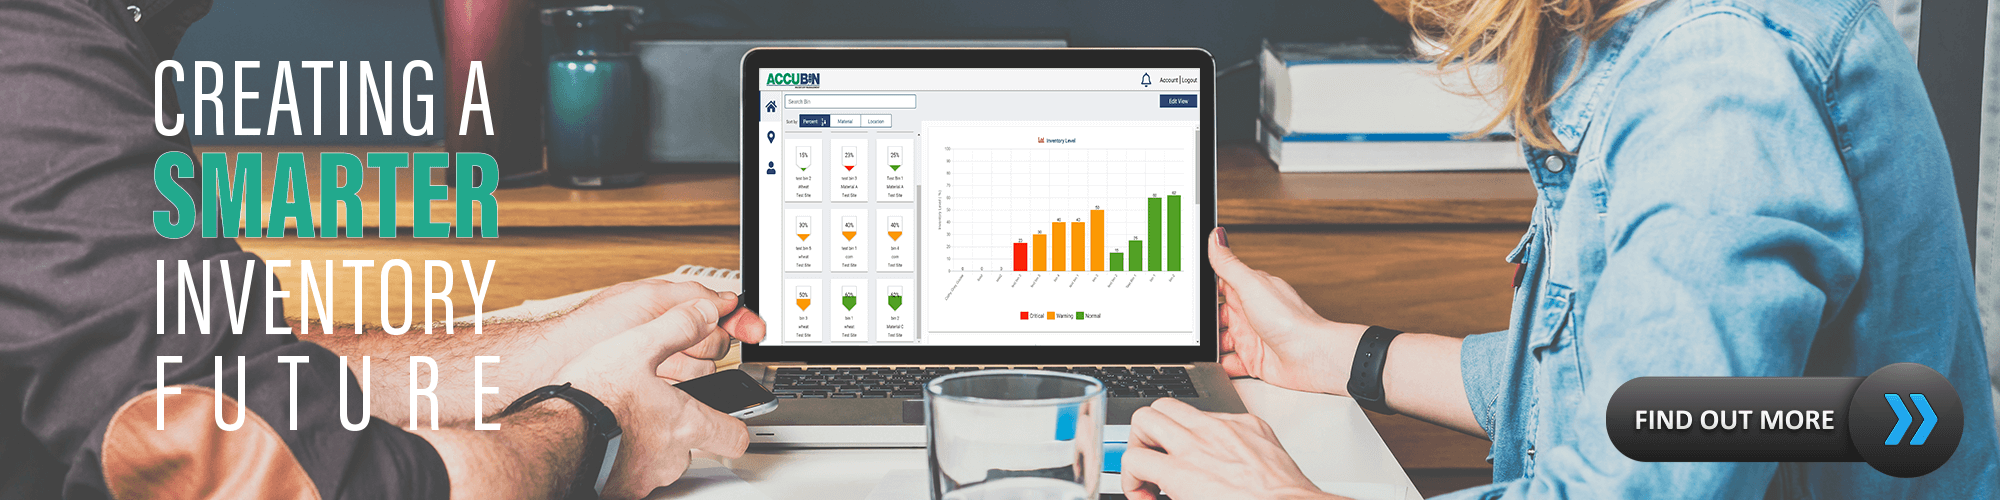 Learn more about AccuBin Smart Inventory Management